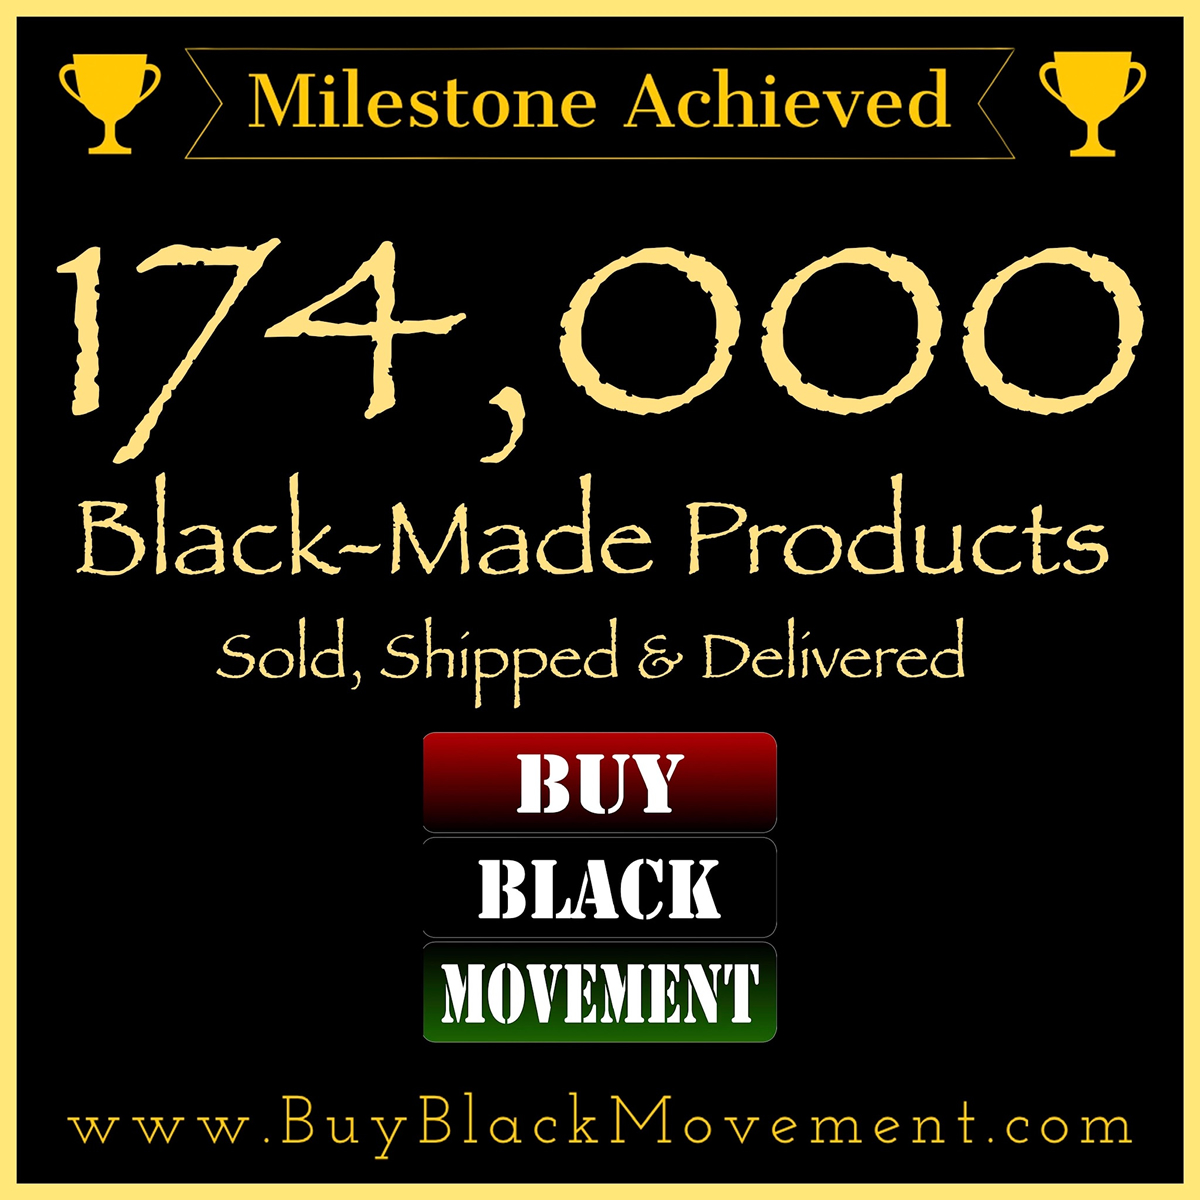 174,000 Products Sold